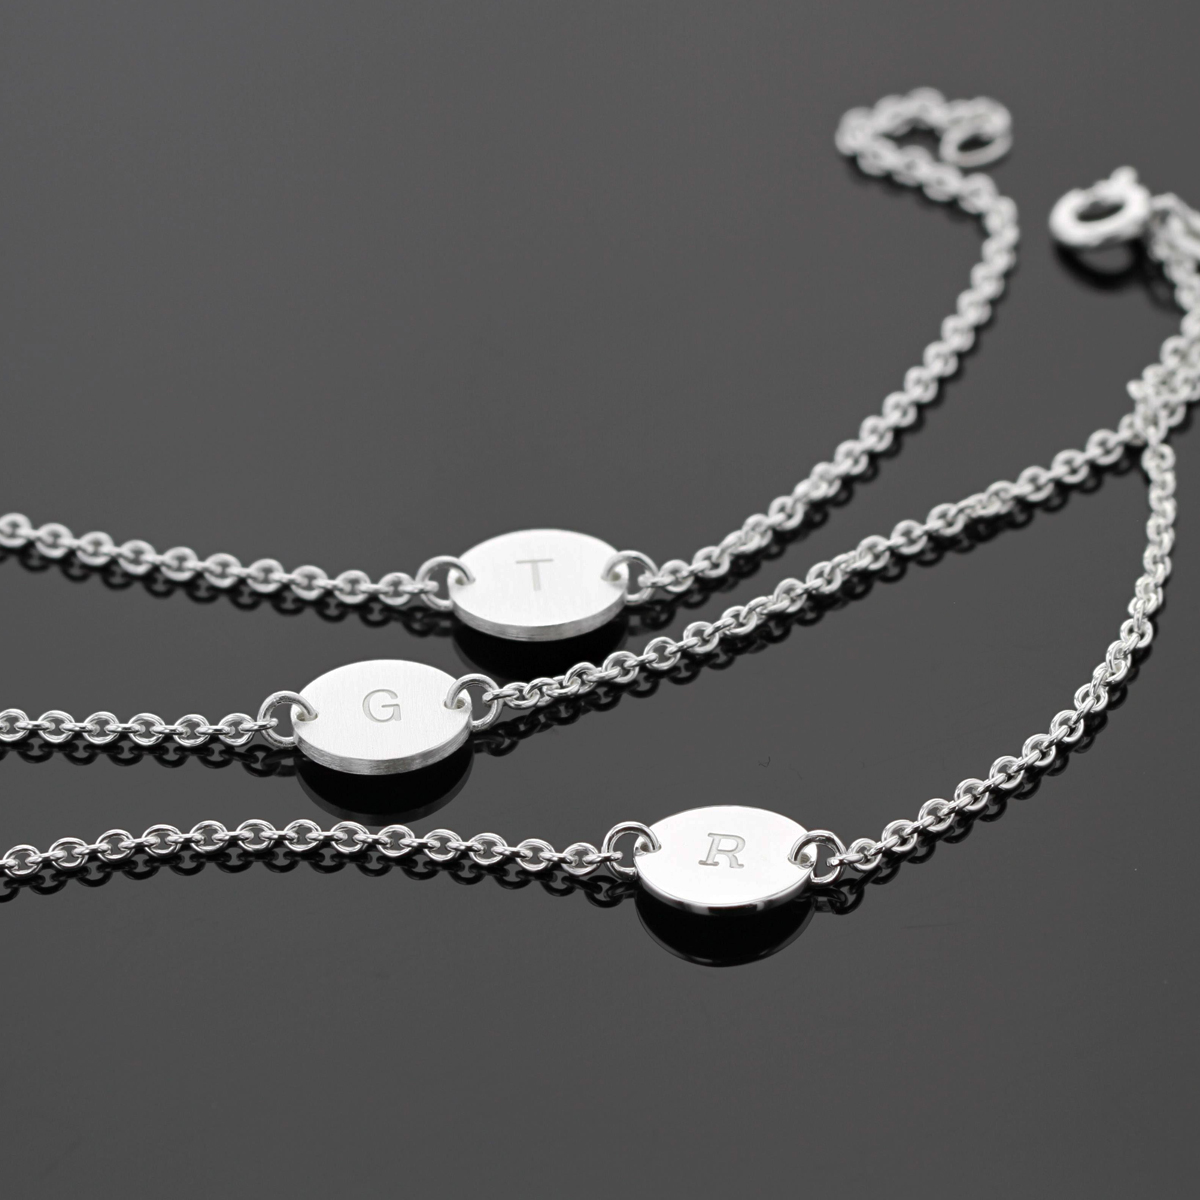 Personalised jewellery in sterling silver